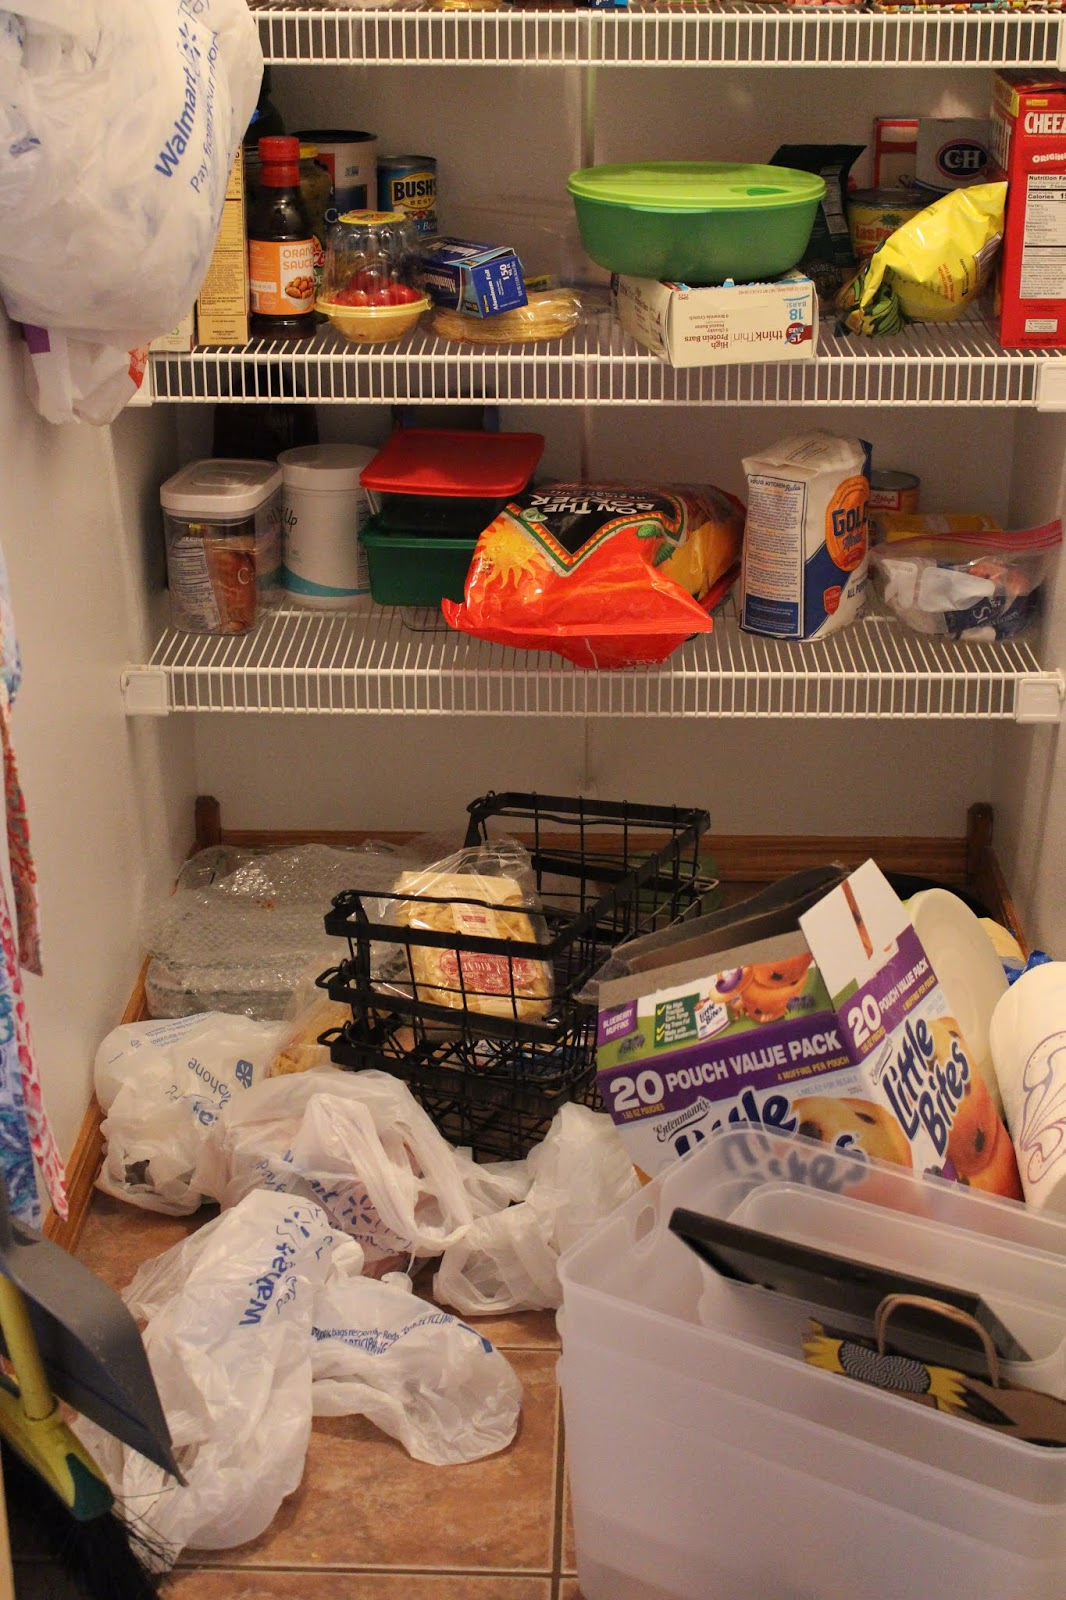 messy pantry, bags on the floor